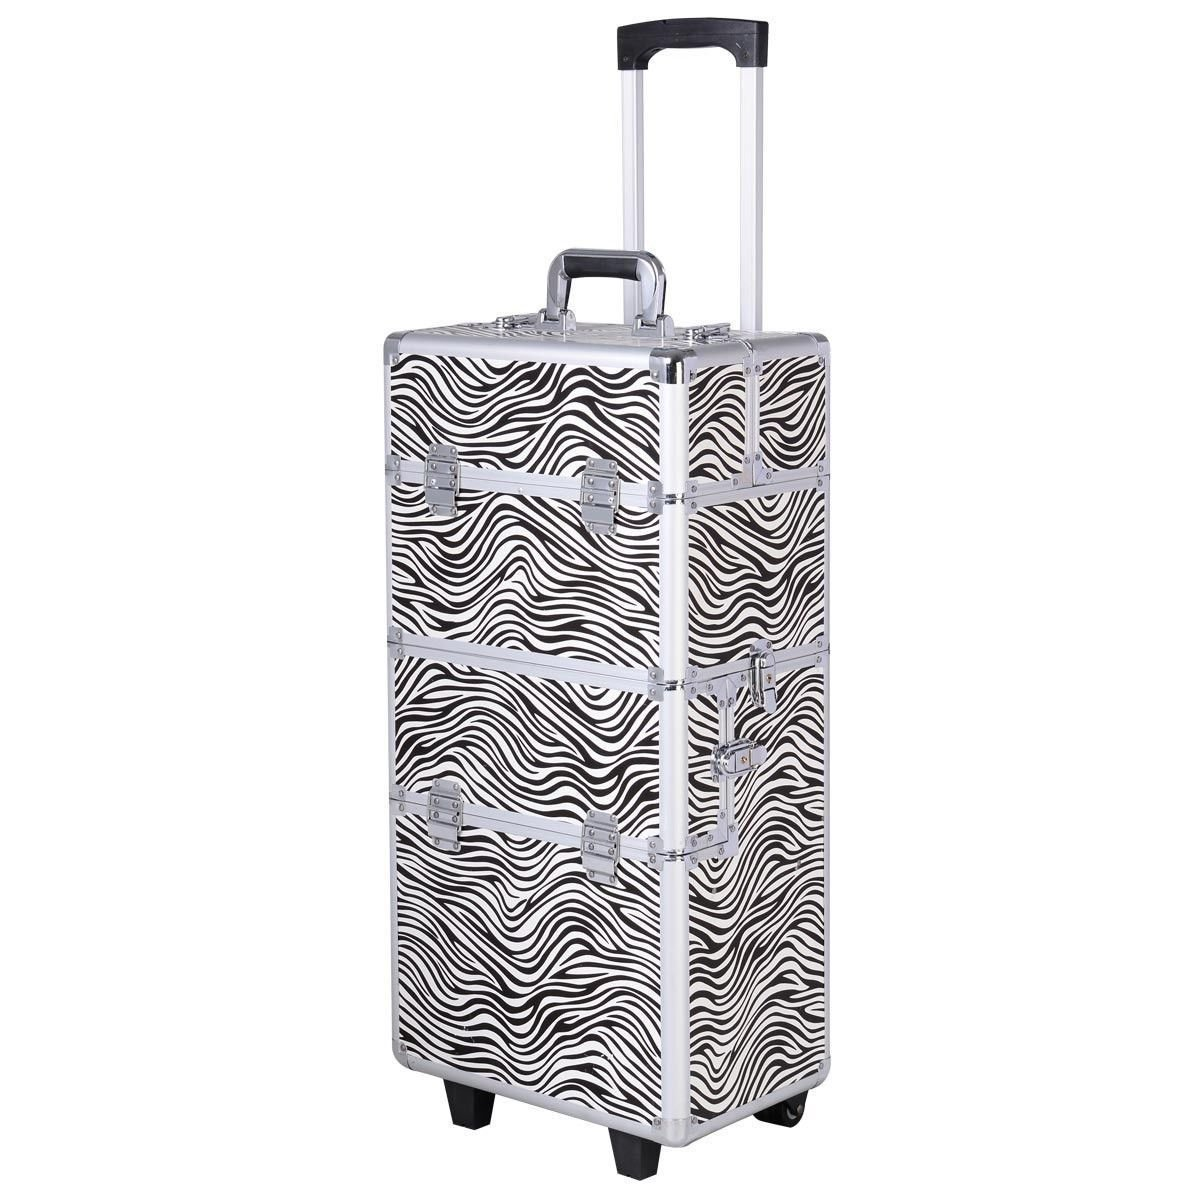 3 in 1 Pro Aluminum Rolling Makeup Case Salon Cosmetic Organizer Trolley - Zebra By Allgoodsdelight365